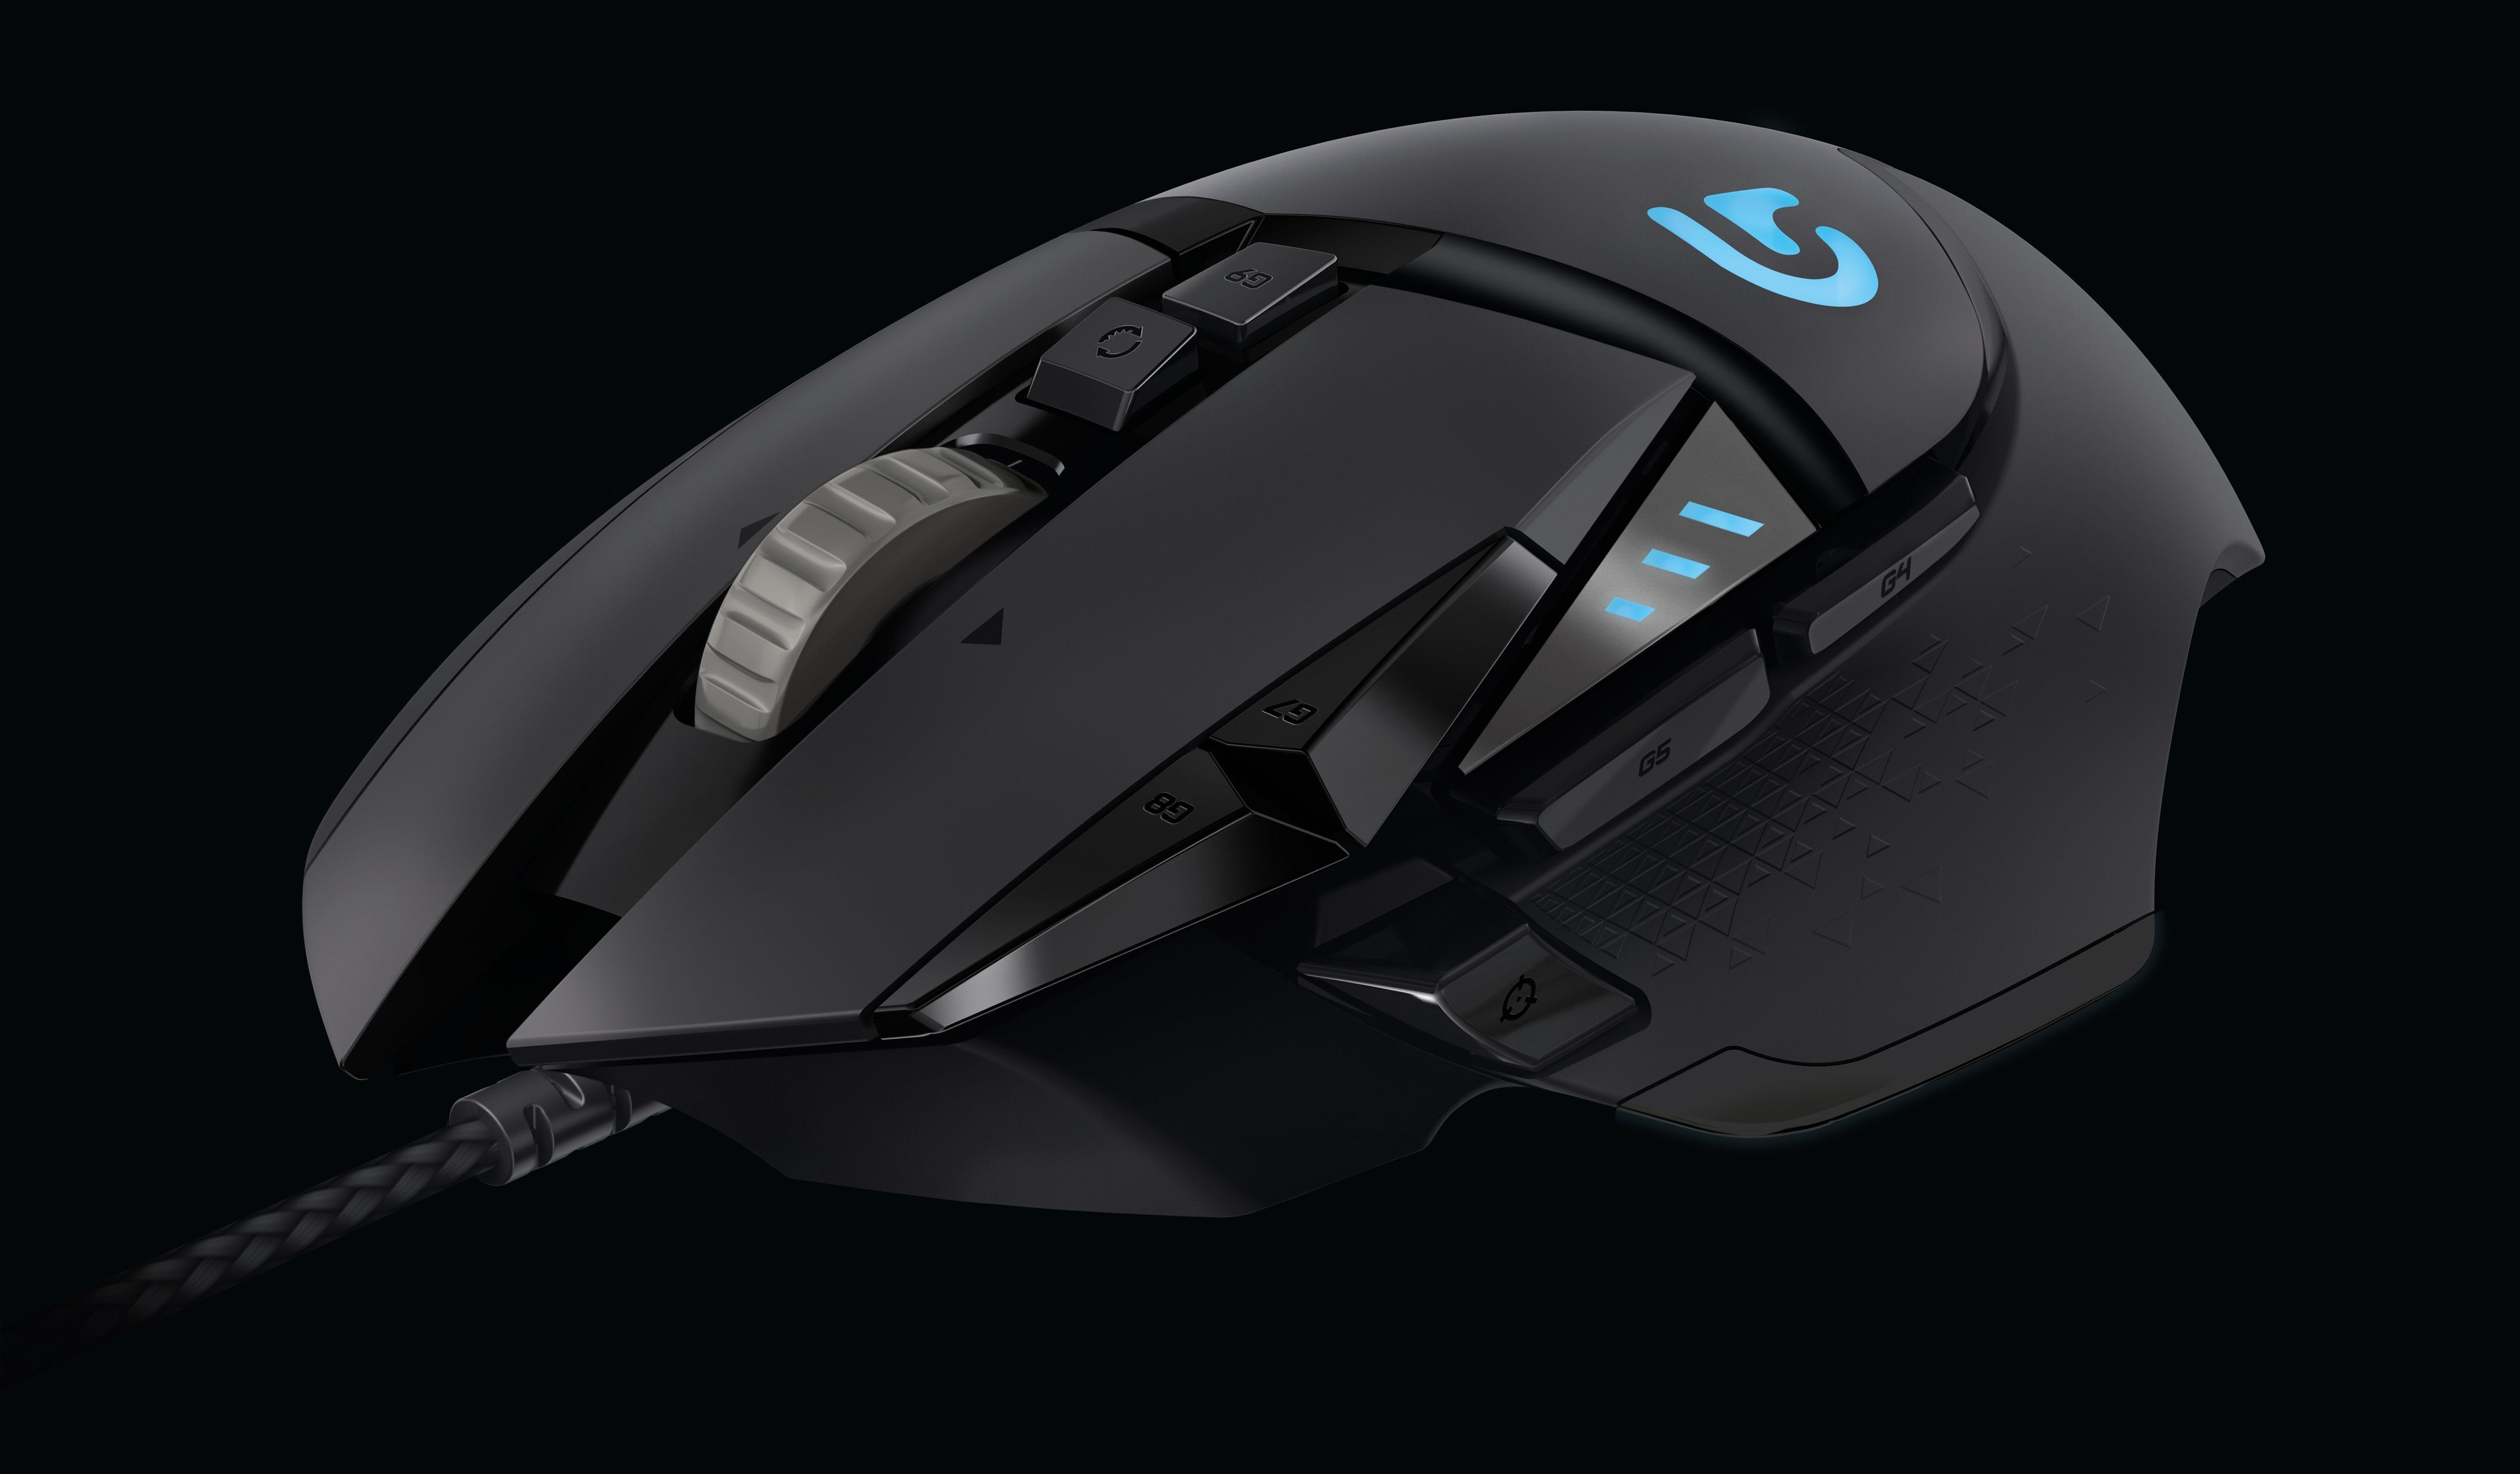 Logitech Games Gaming-Maus »G502 Proteus Spectrum tunable«